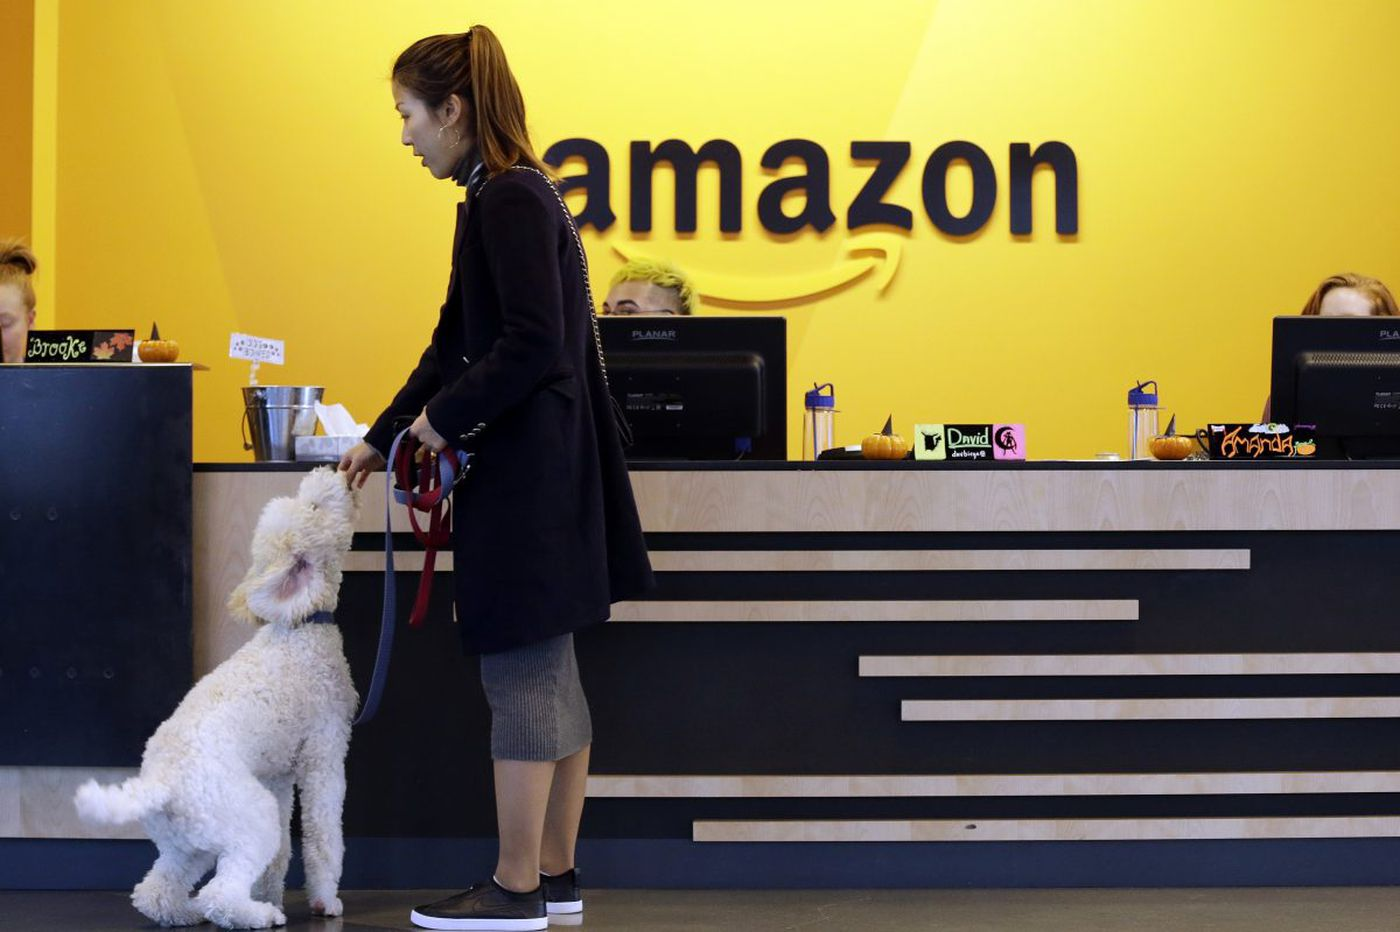 Facing opposition, Amazon reconsiders N.Y. headquarters site, two officials say